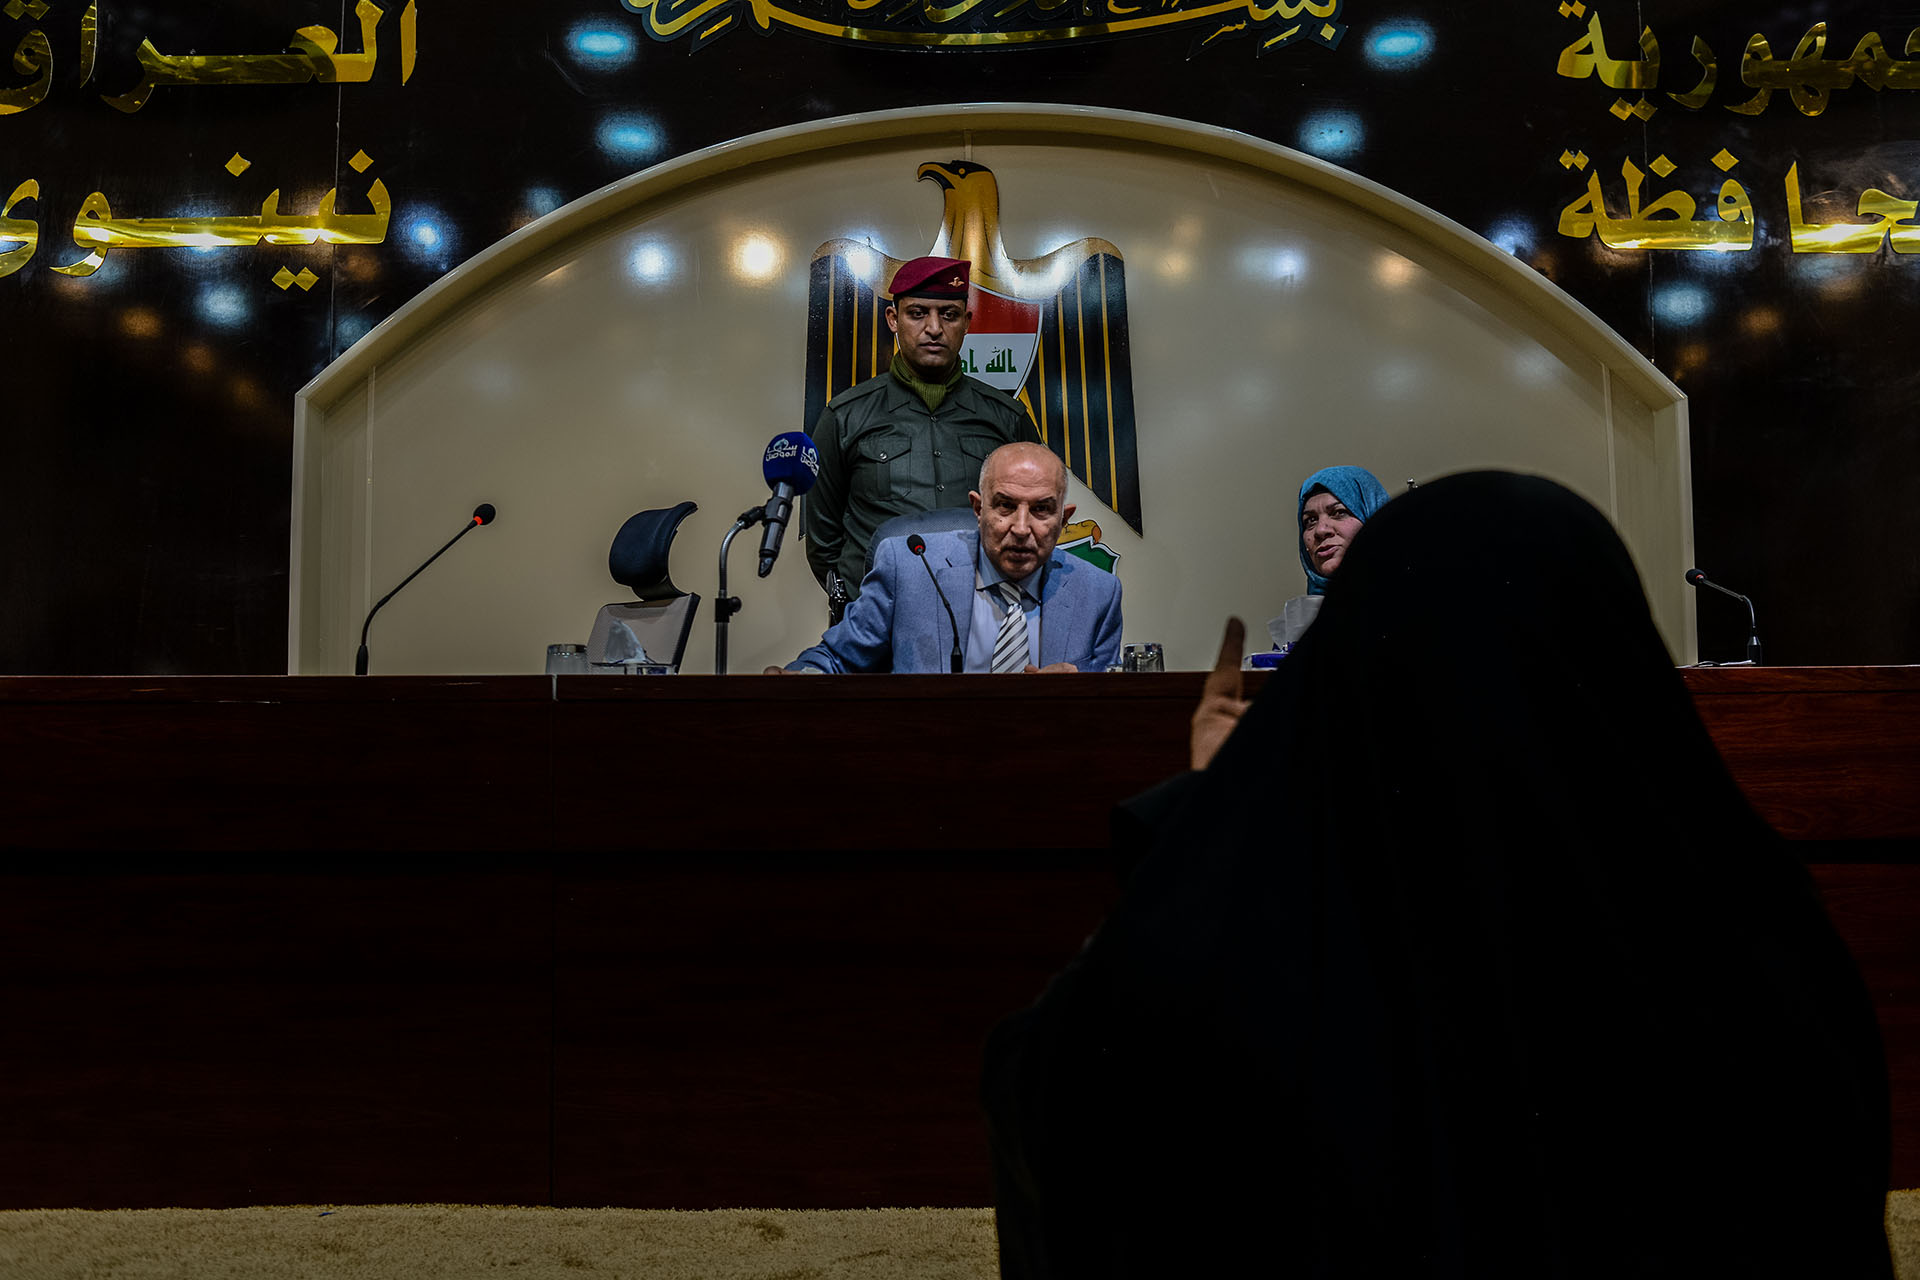 Mosul Governor Nofal Hammadi holds a public meeting to hear the concerns of citizens, and speaks to a widow who is asking for financial support.  (Alex Potter/GroundTruth)